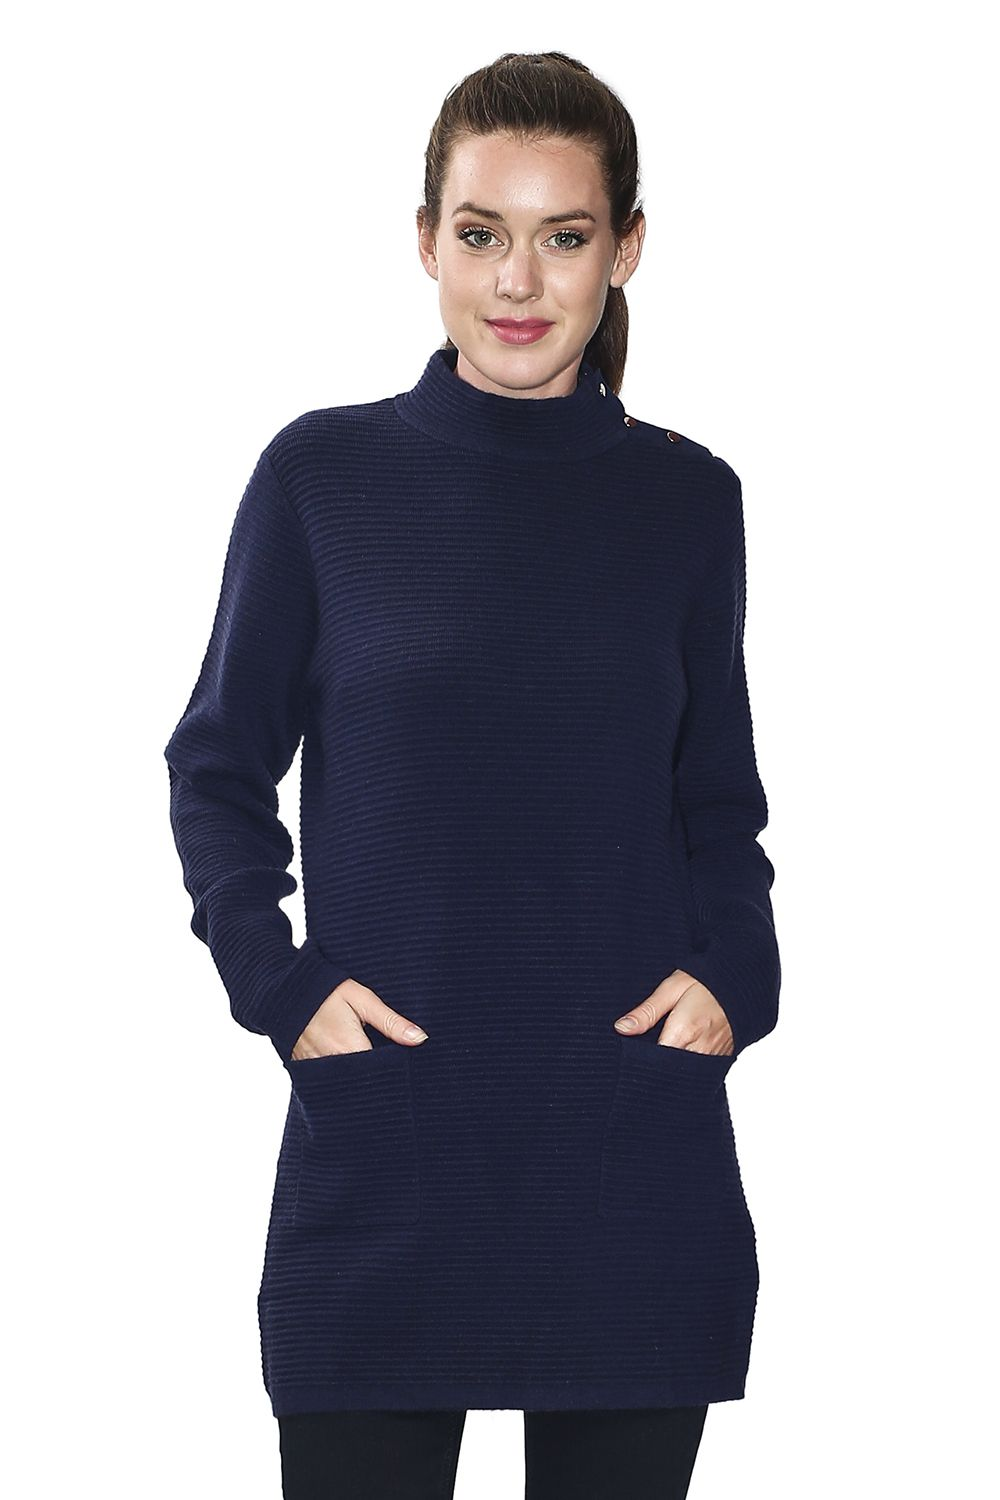 Assuili Long Sleeve Tunic with Pockets and Buttoned Shoulders in Navy